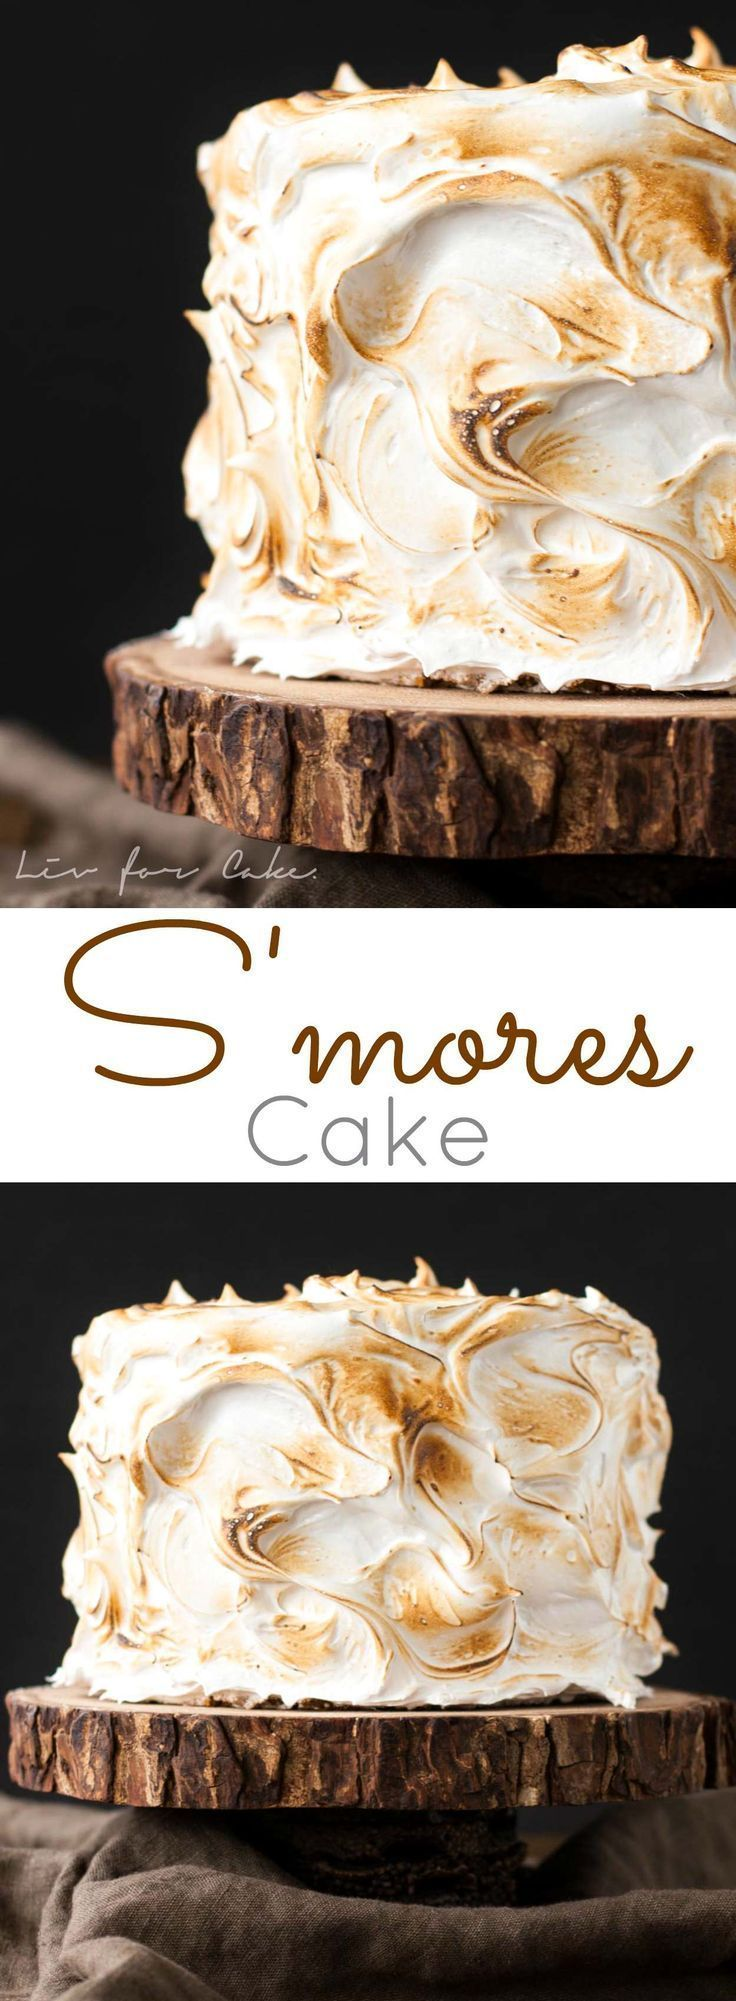 This S'mores Cake is better than the real thing! A graham cracker cake filled with a whipped milk chocolate ganache and topped with toasted marshmallow fluff.